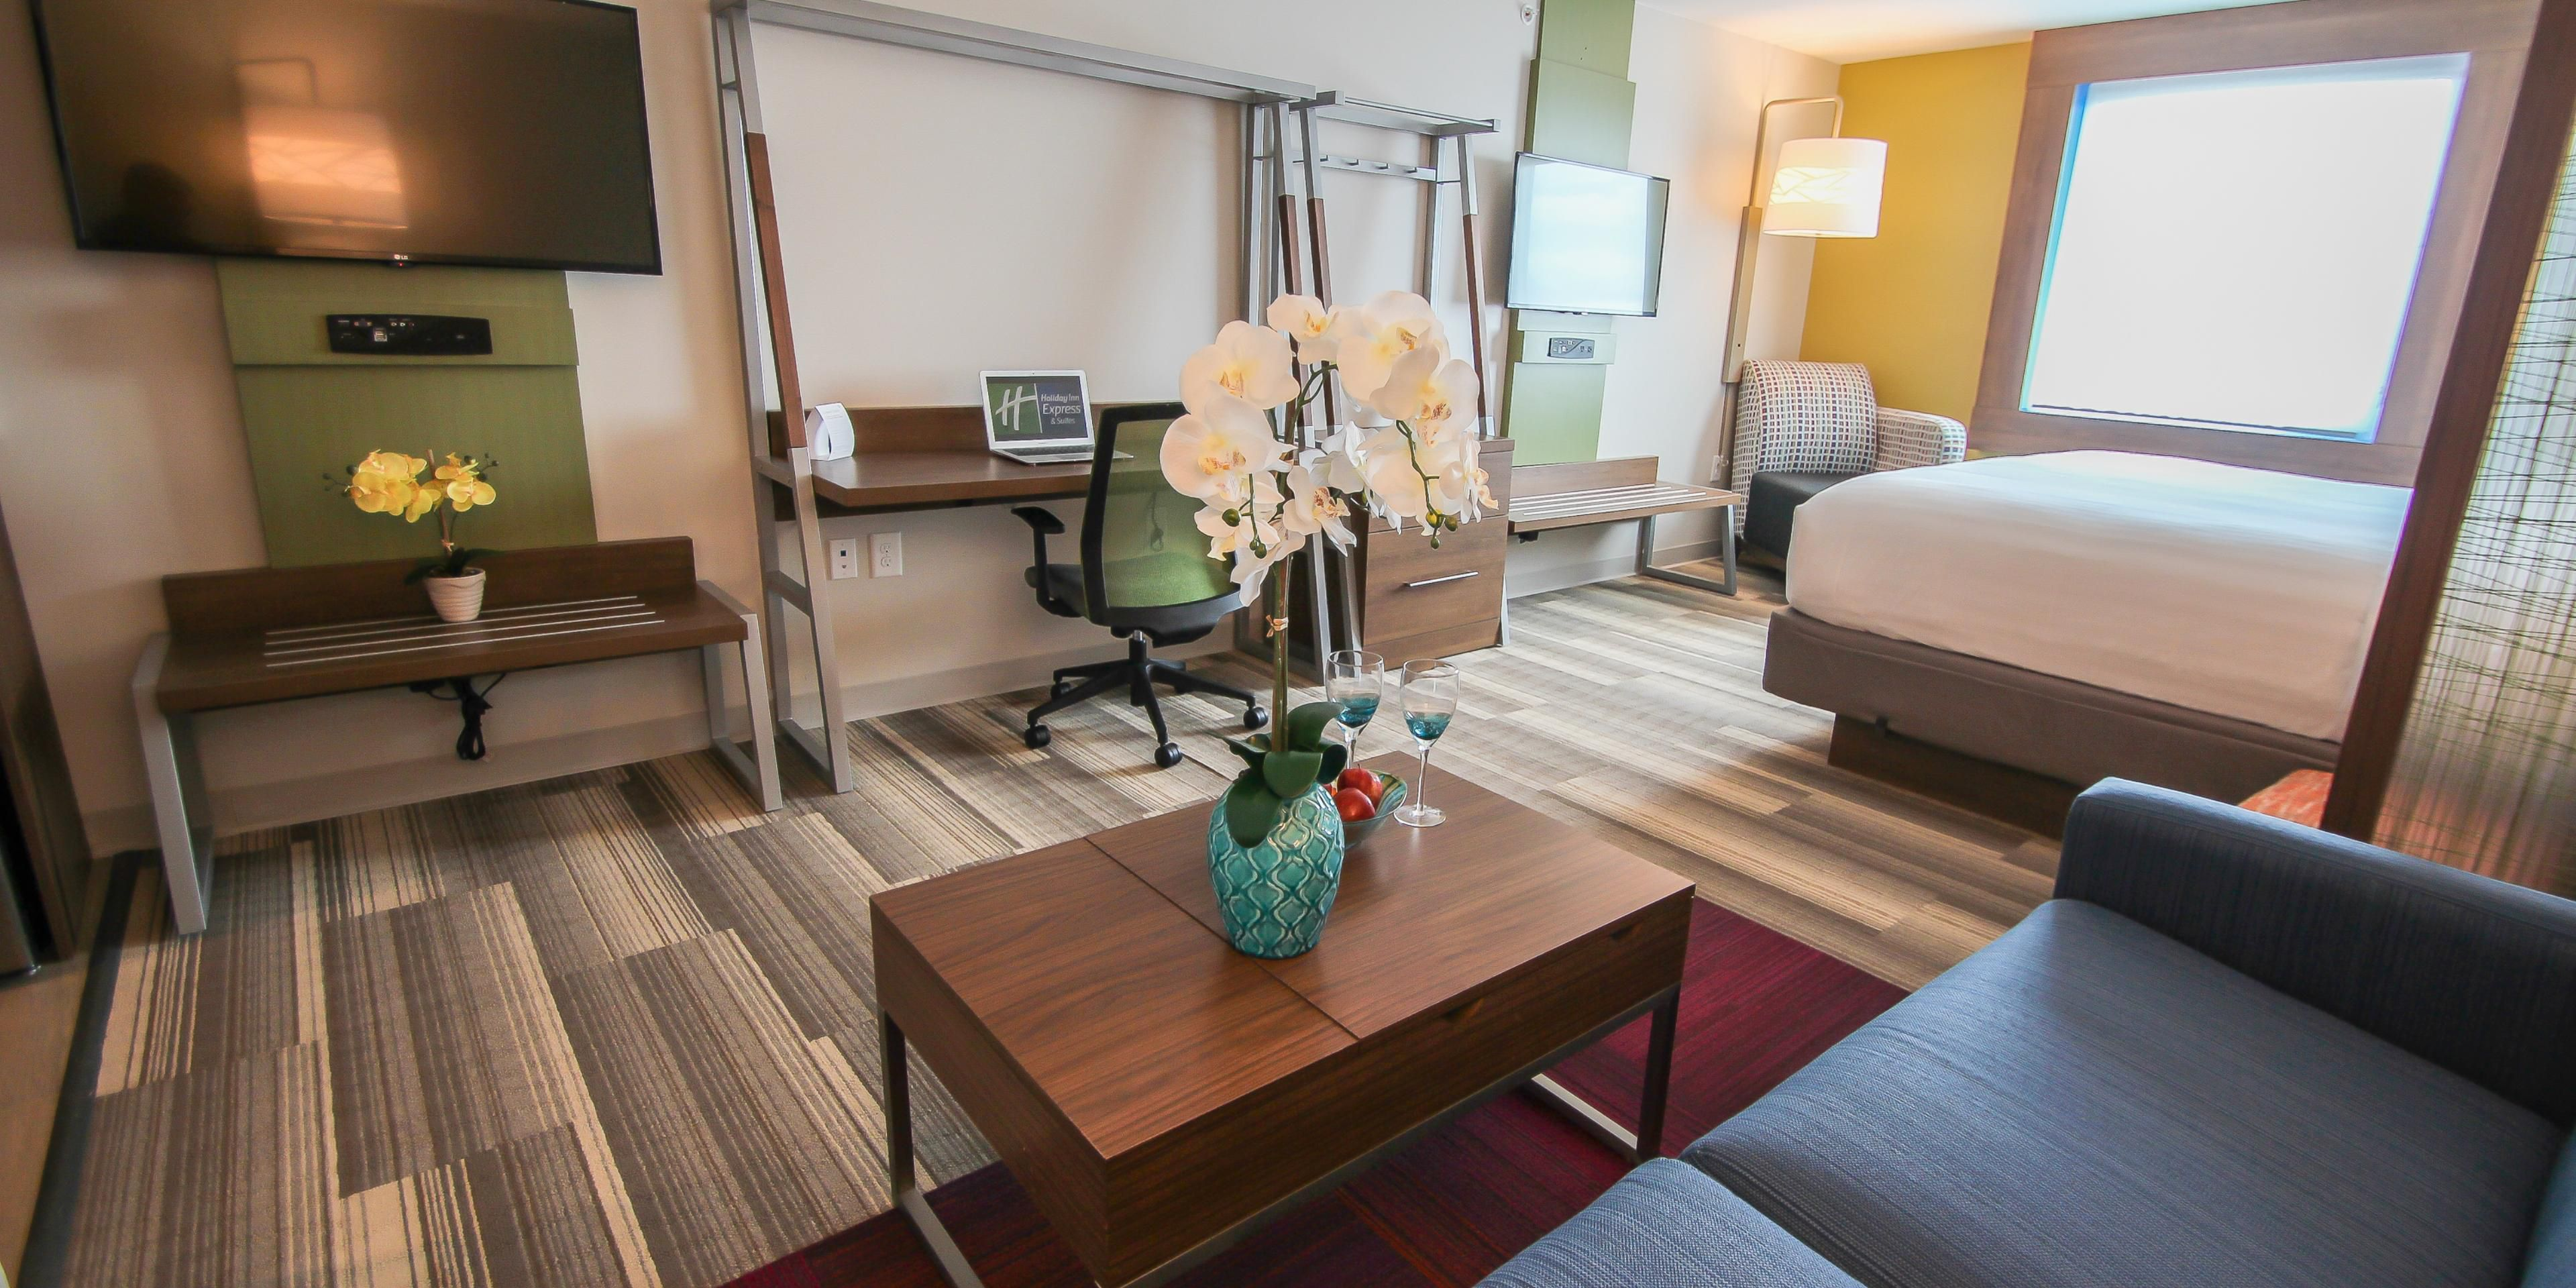 Holiday Inn Express Suites Miami Arpt And Intermodal Area Hotel By IHG